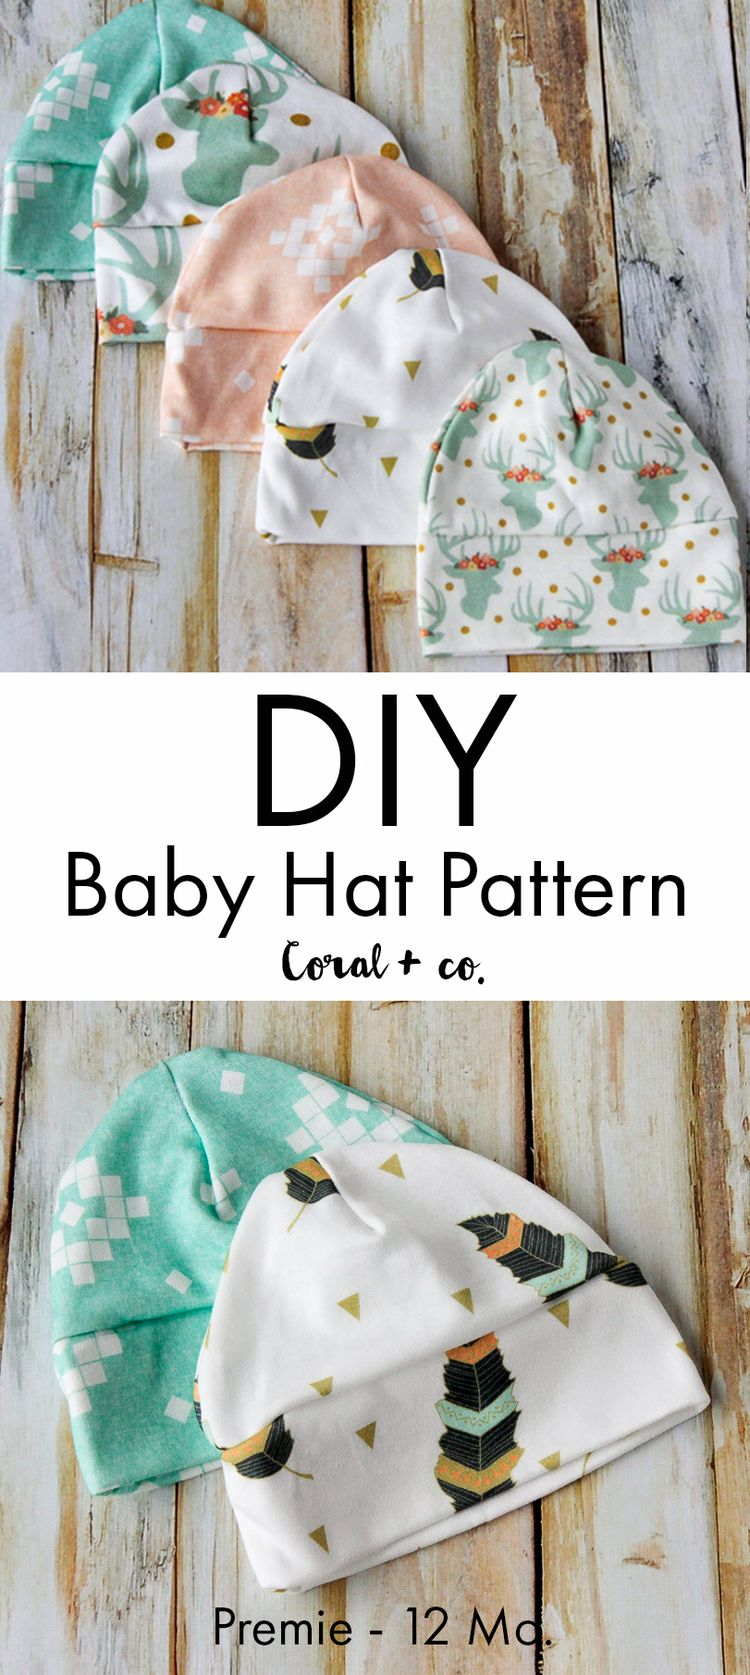 Diy Baby Hat Sewing Pattern And Tutorial Knit Baby Hat Baby Hat Sewing Pattern Baby Sewing Projects Hat Patterns To Sew